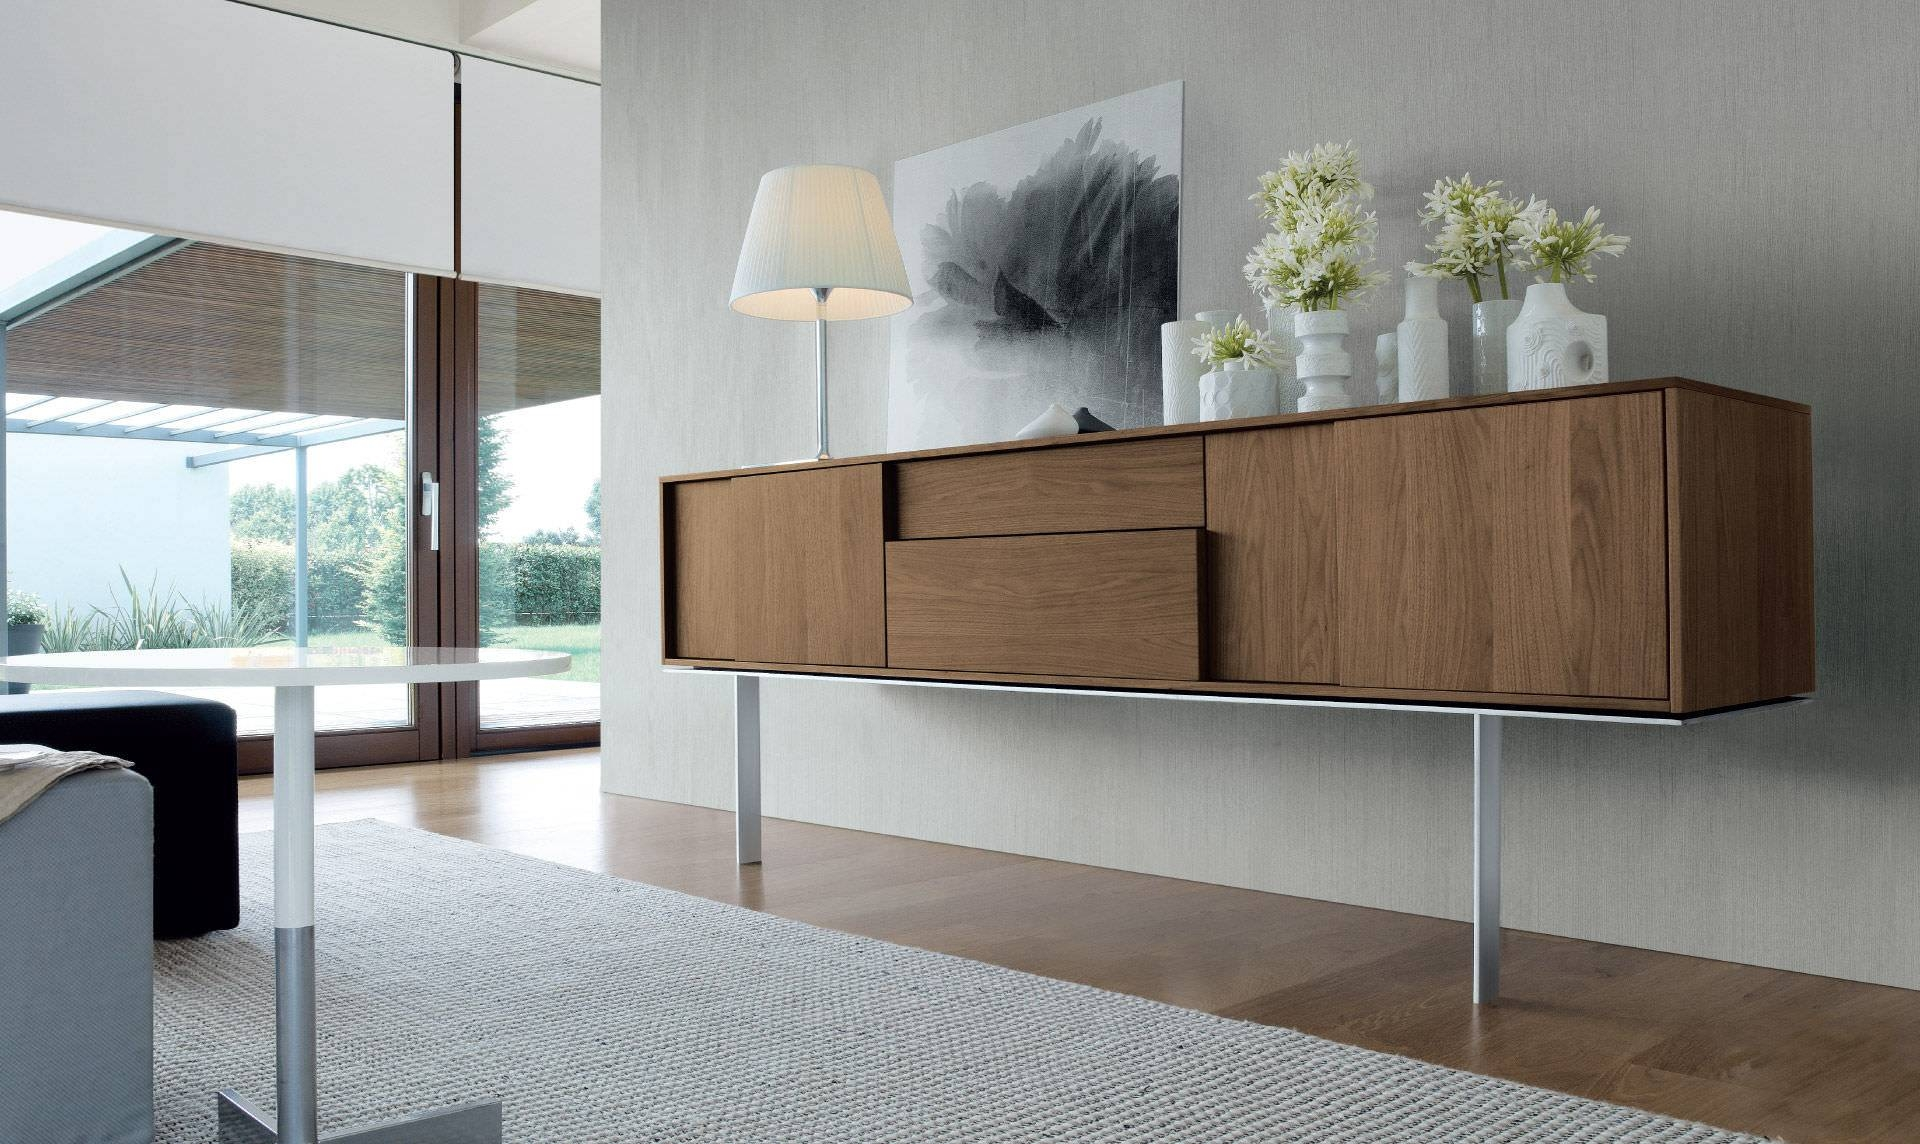 Sideboard With Long Legs / Contemporary / Wooden – Framesergio Within Most Up To Date Long Sideboards (#10 of 15)